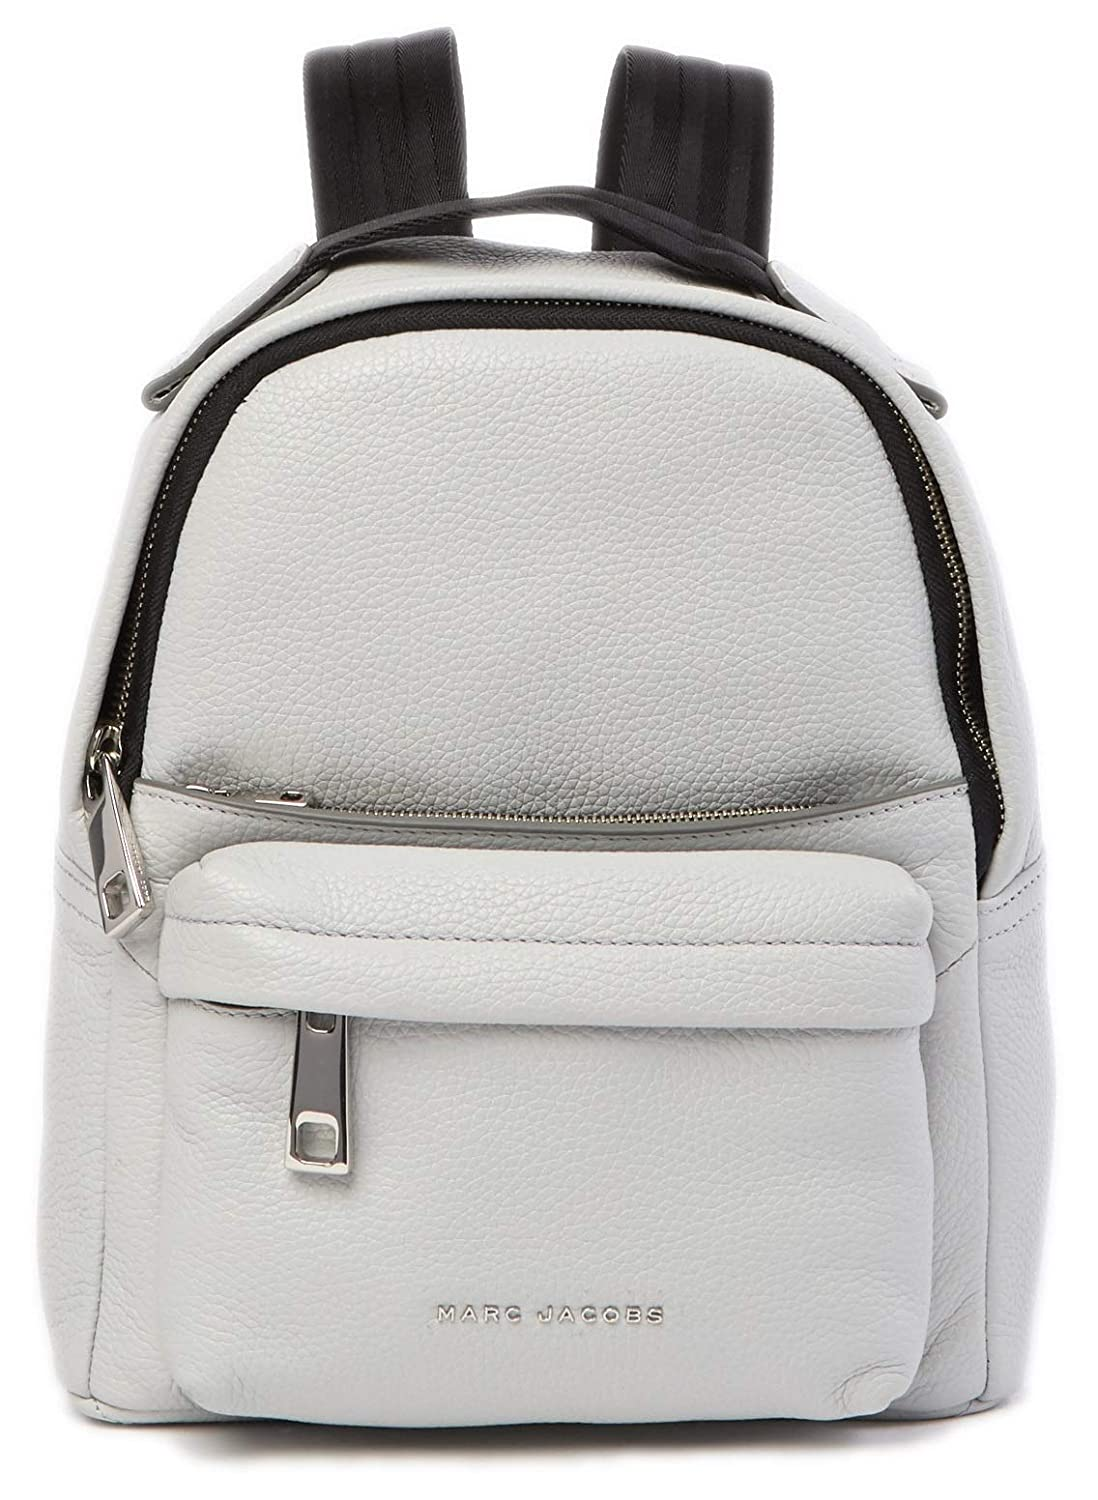 luxuriant in design superior materials pretty cool Amazon.com | Marc Jacobs Varsity Pack Small Leather Backpack ...